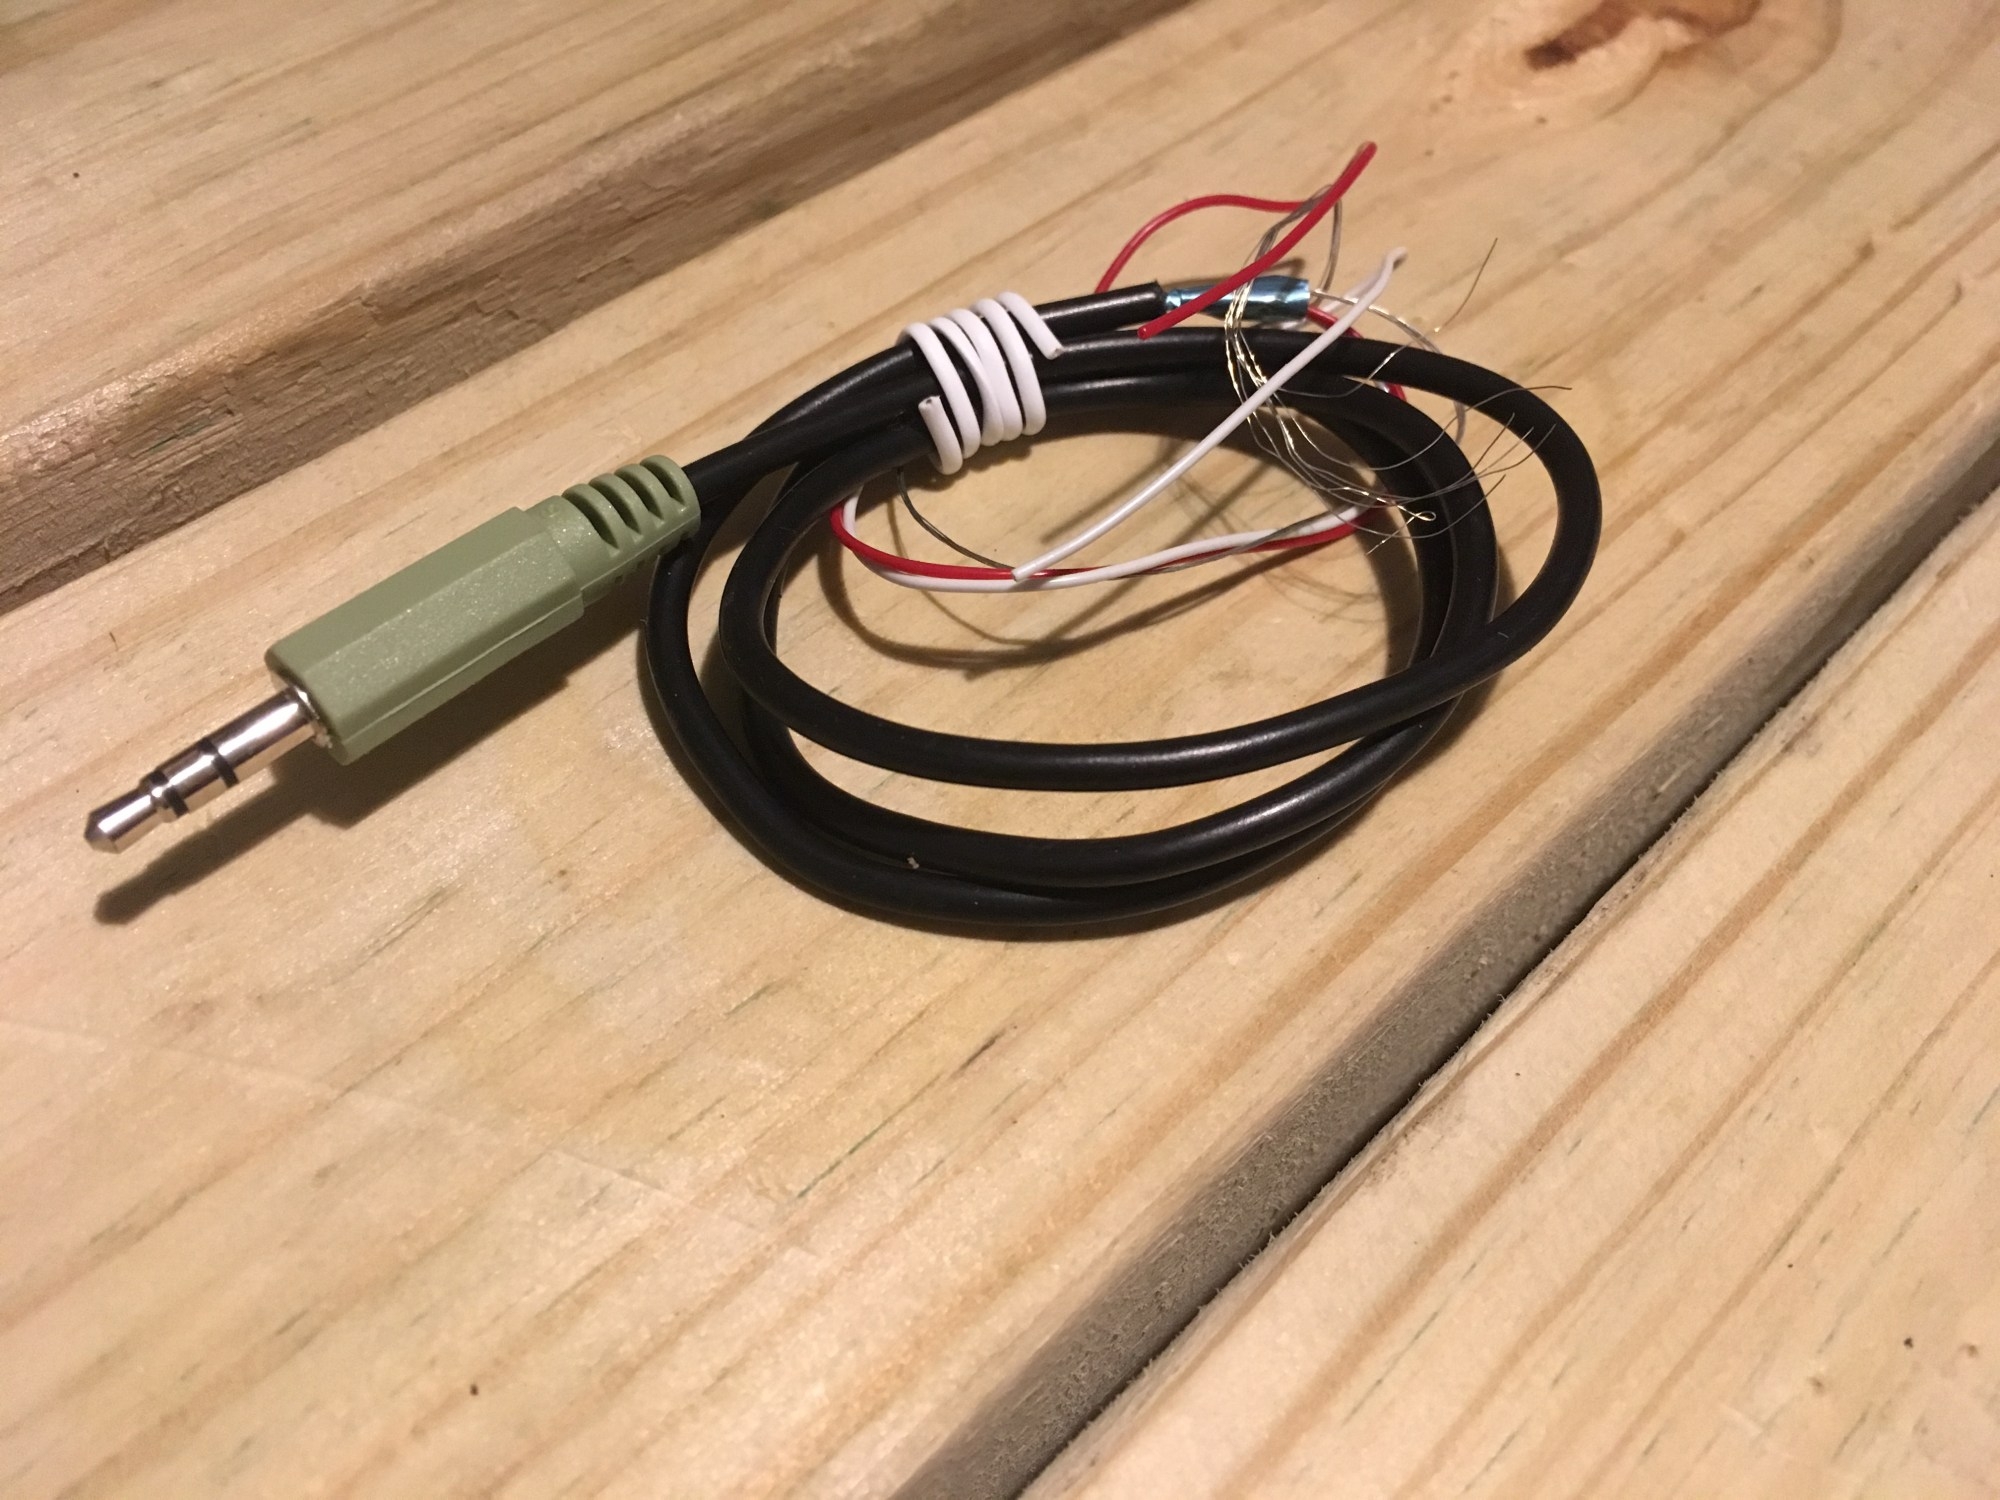 hight resolution of i stripped a normal tip ring sleeve trs audio jack cable to expose the three wires within left right ground these wires were then connected to their